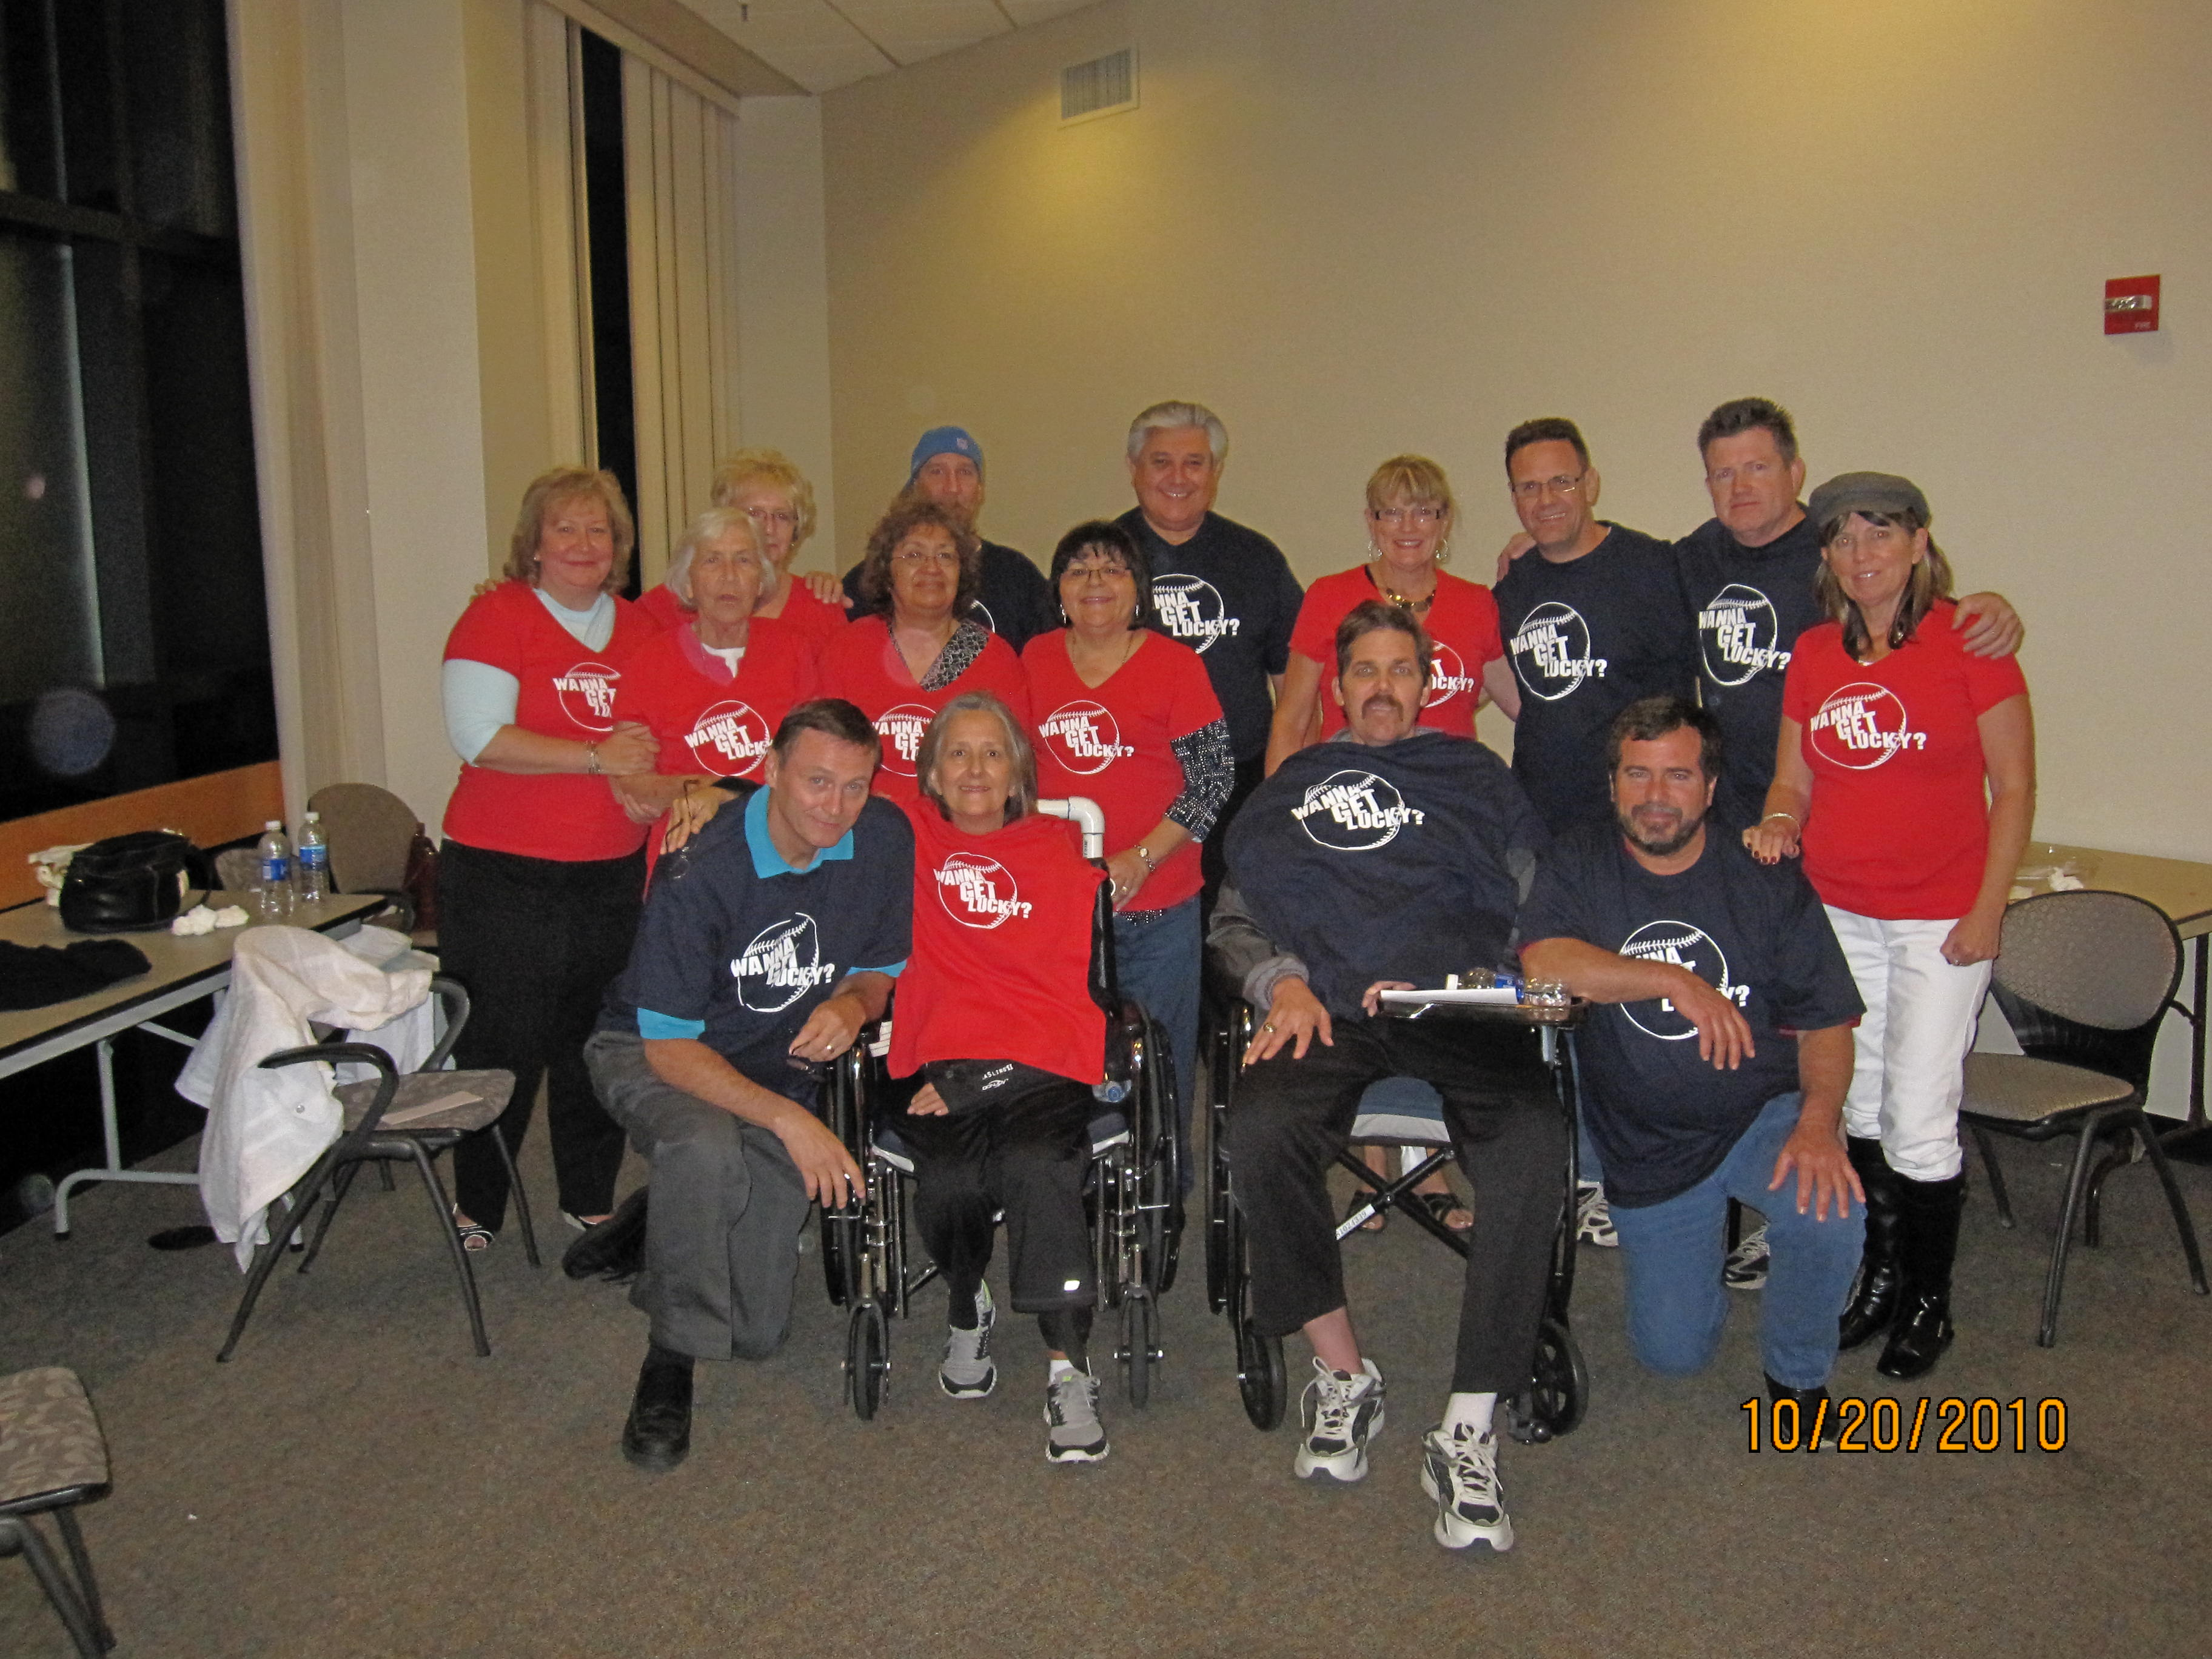 http://www.joeniekrofoundation.com/aneurysms/my-second-family/attachment/support-group-october/